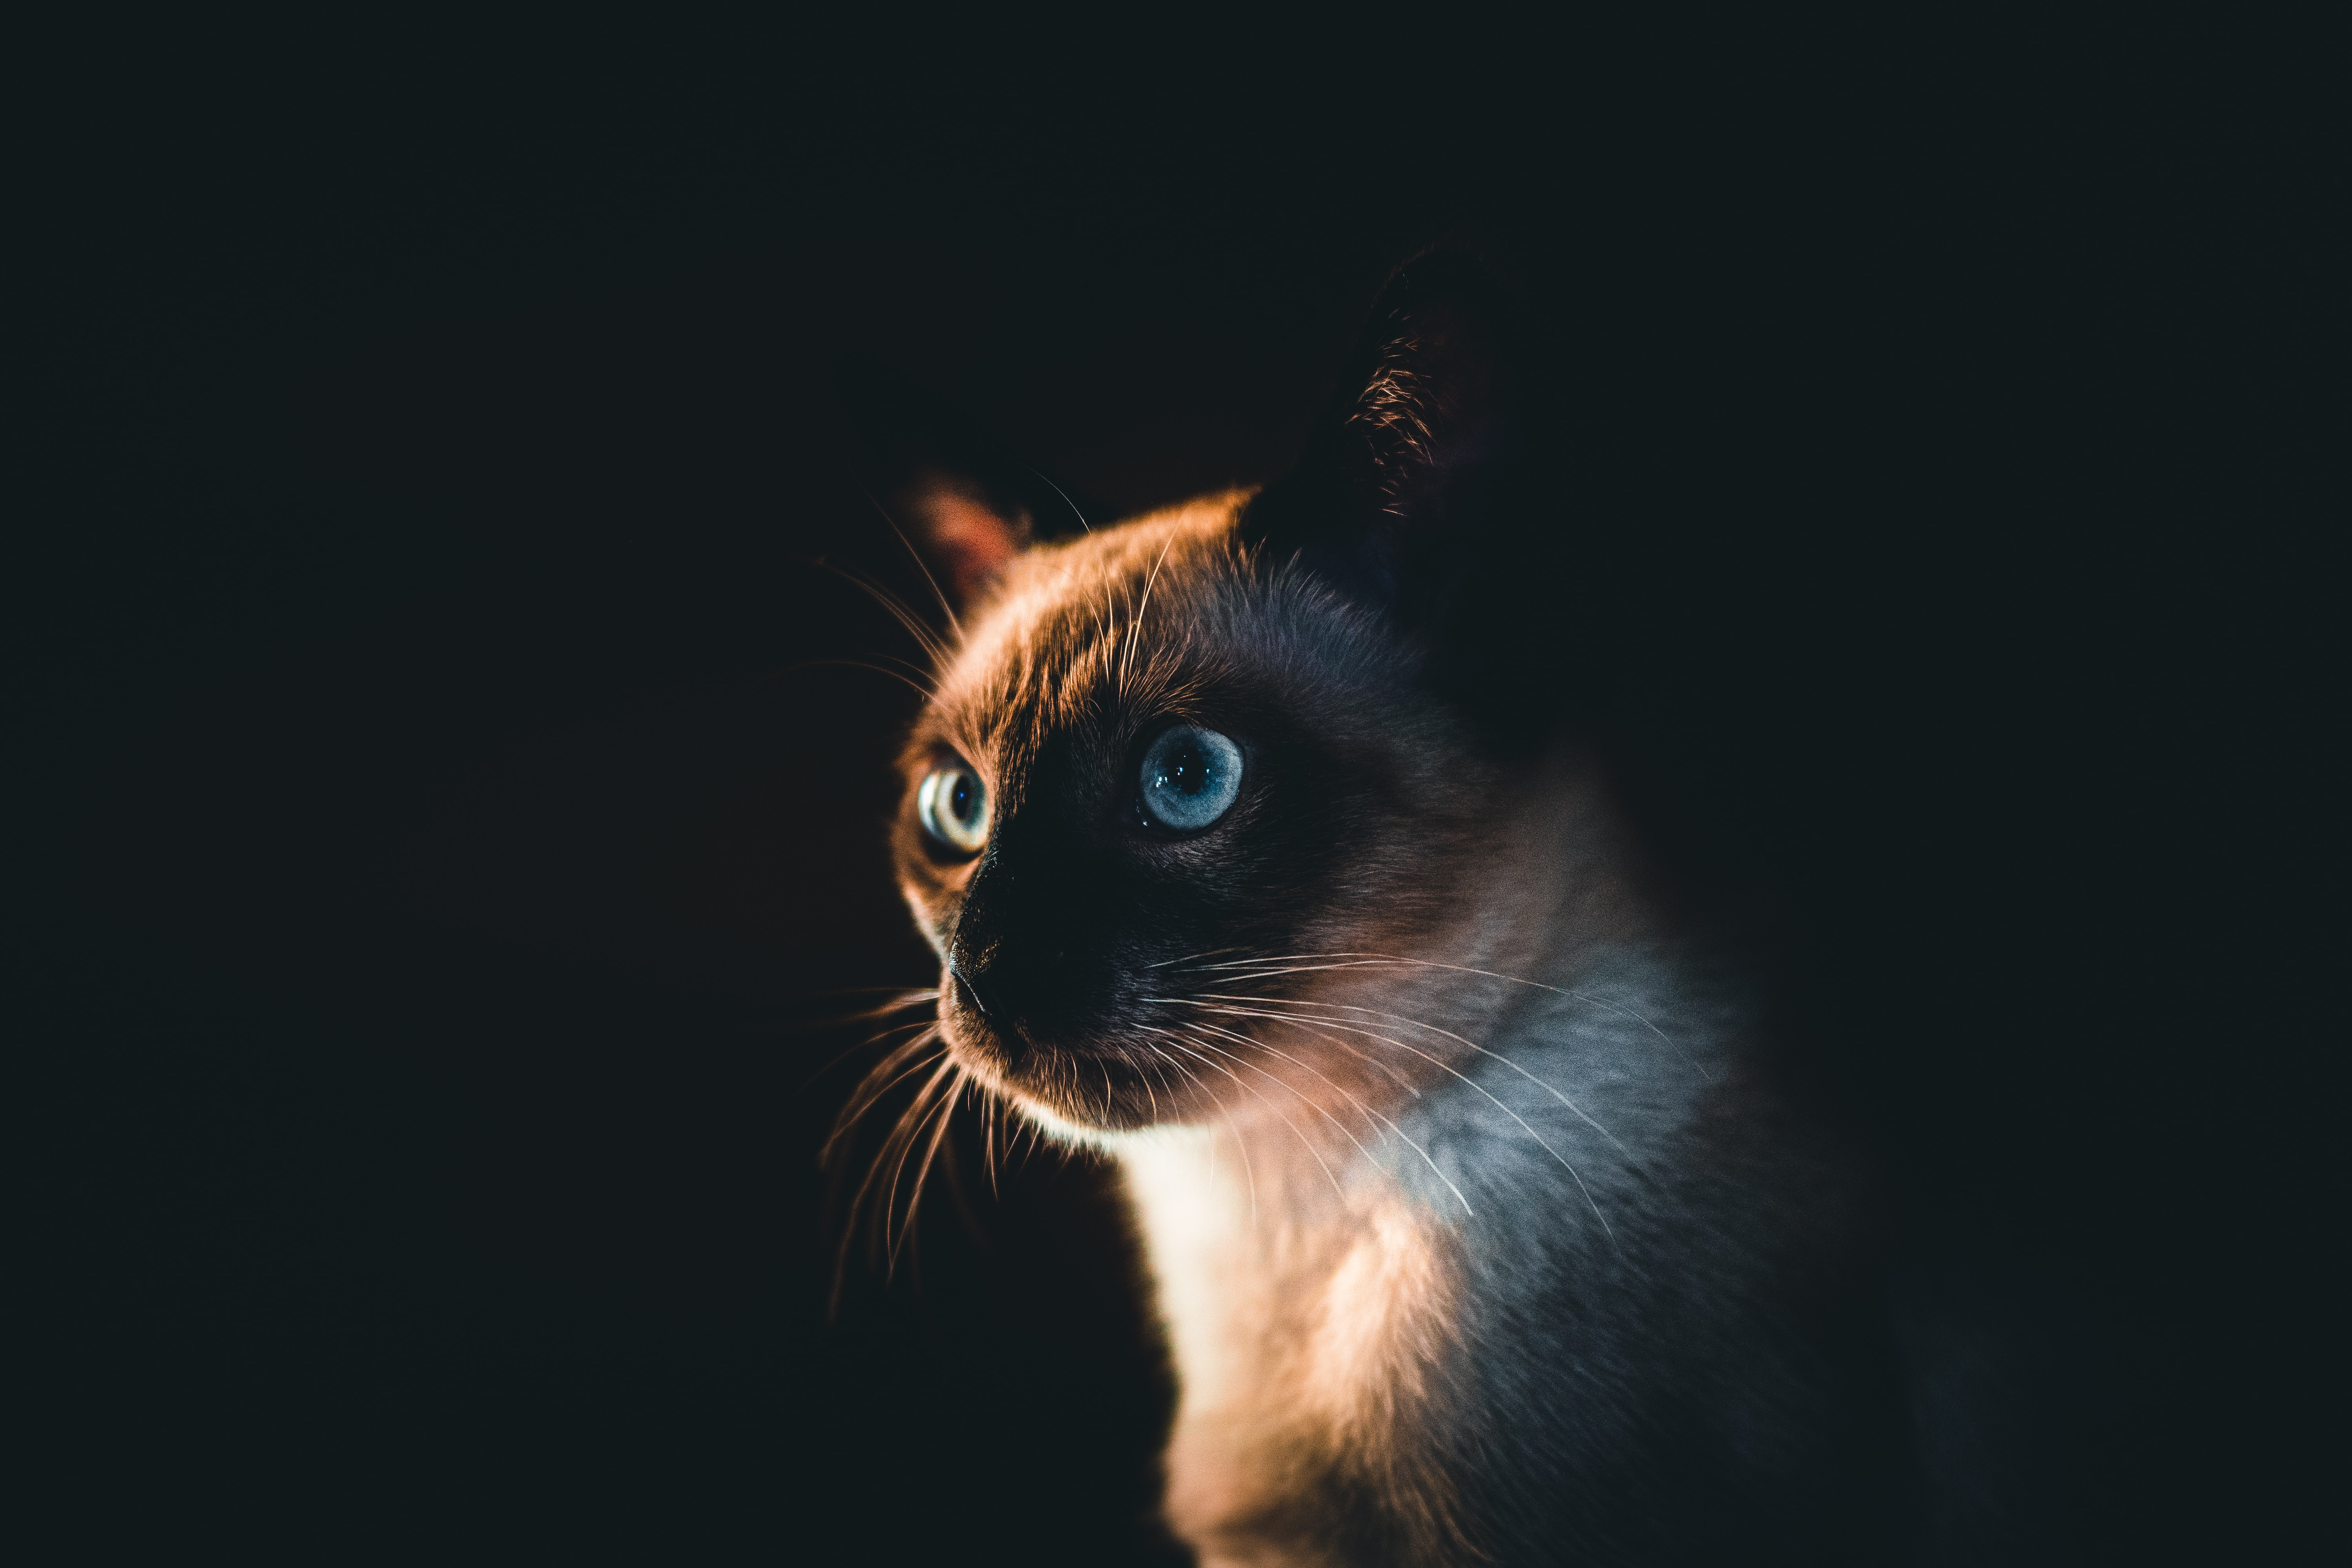 57518 download wallpaper Animals, Siamese Cat, Cat, Pet, Sight, Opinion, Dark screensavers and pictures for free